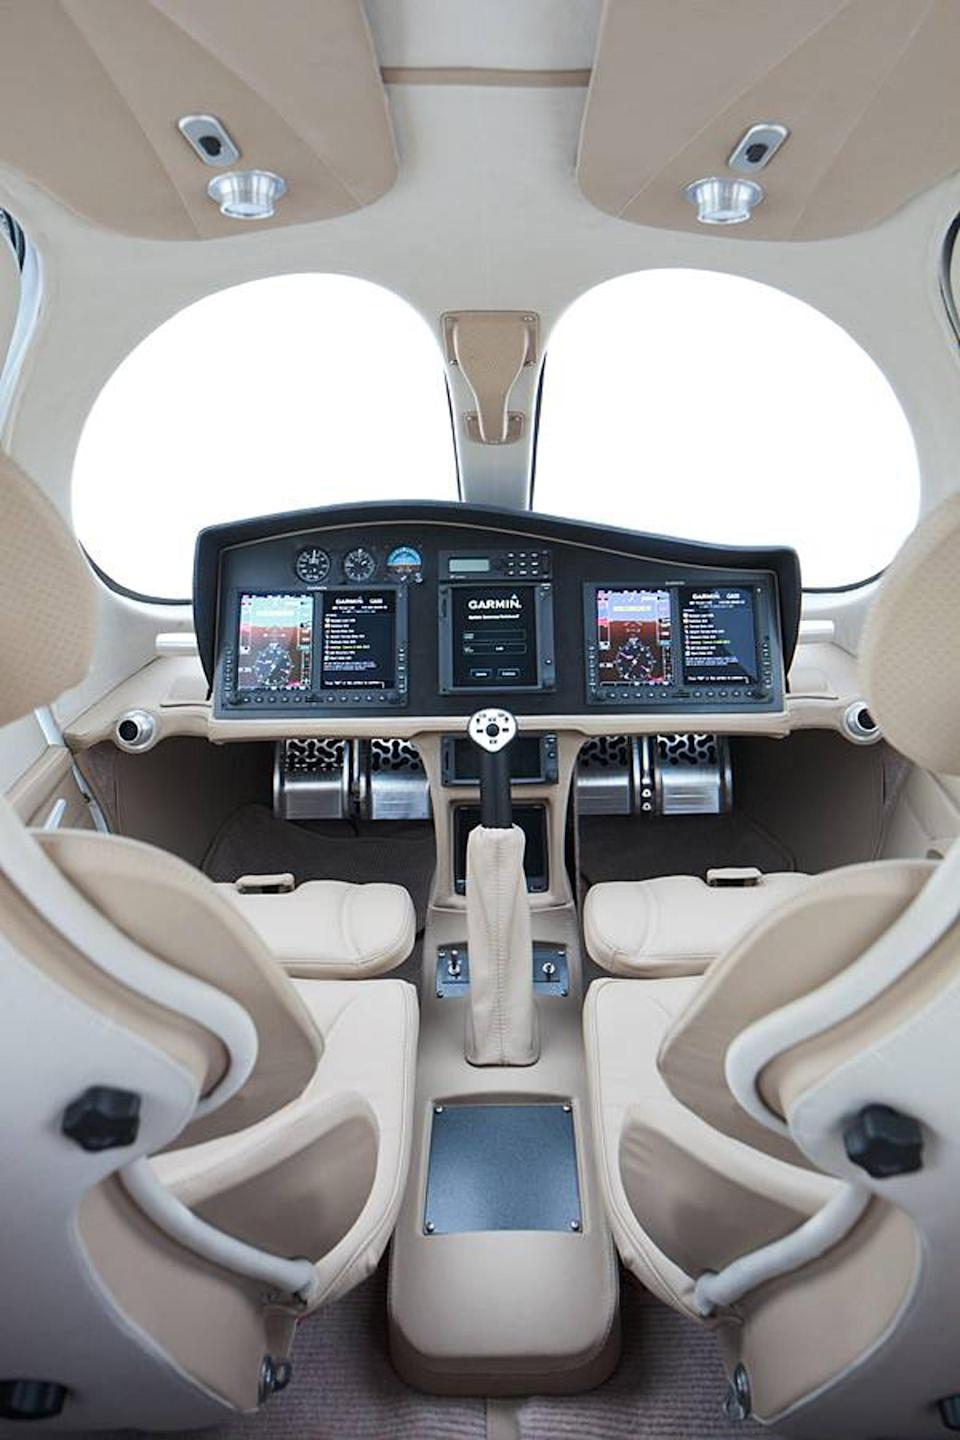 The manufacturers say it will cost £1.7m, making it the cheapest commercial plane on the market. (CEN)